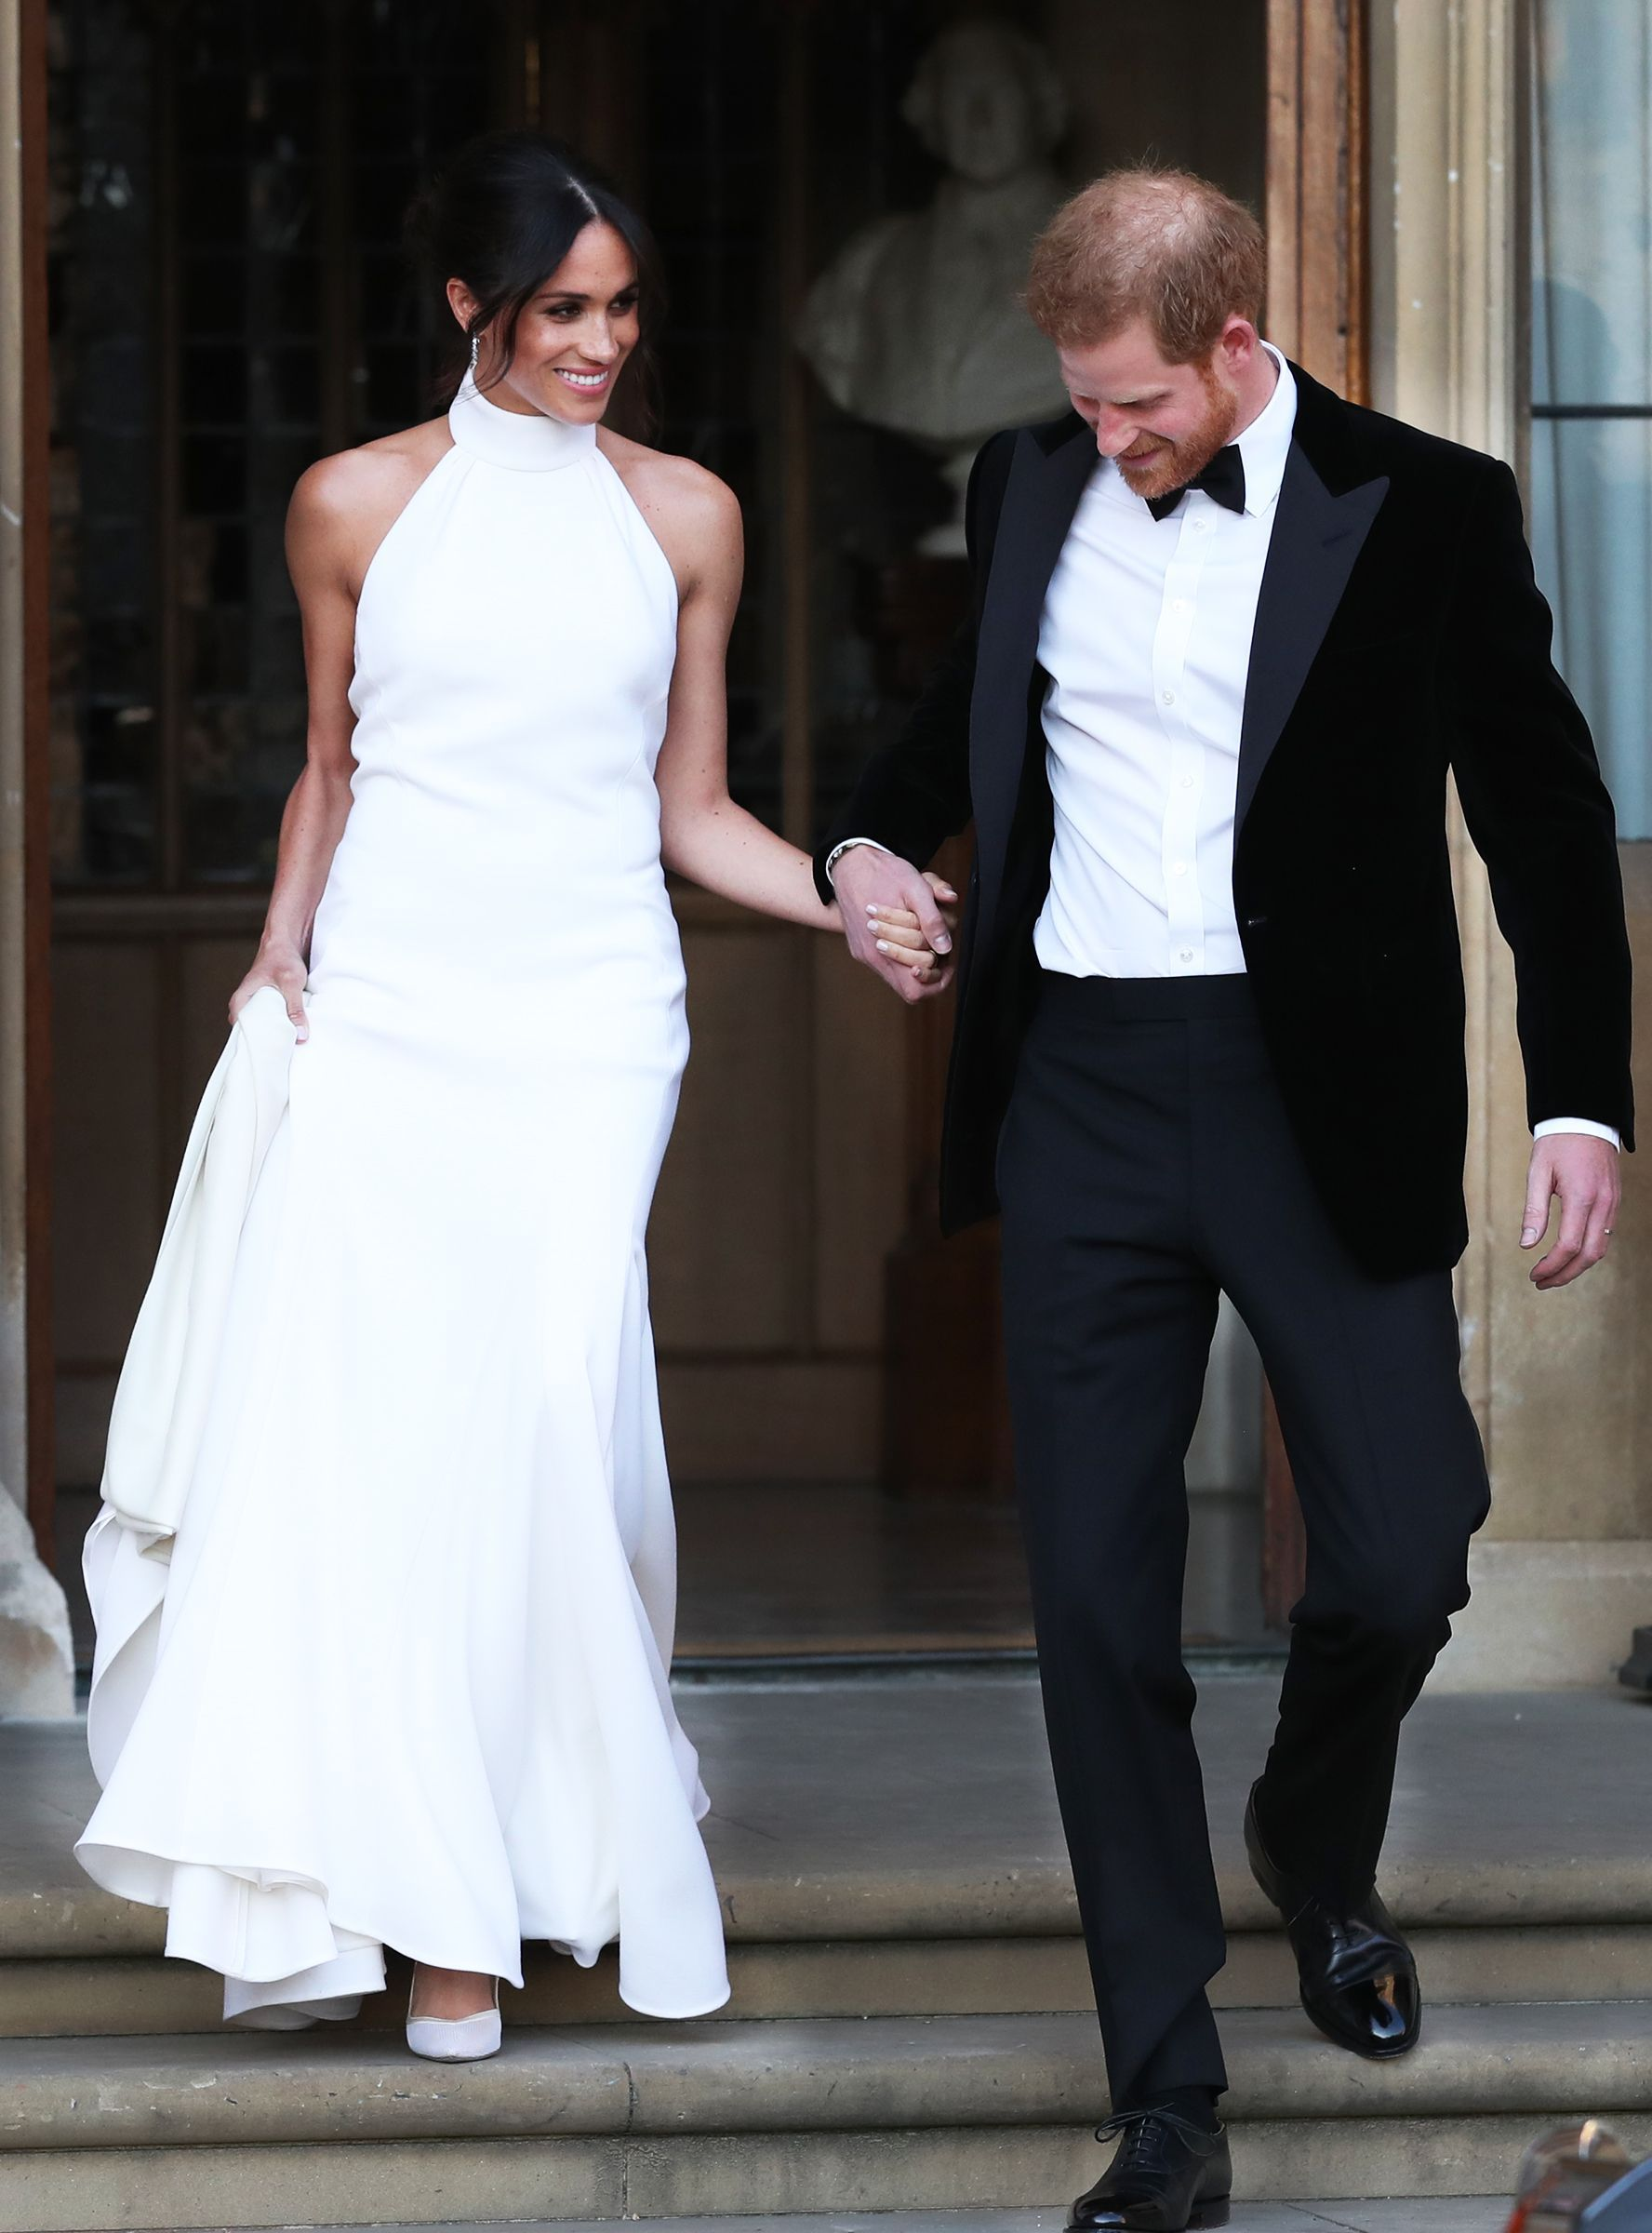 Now You Can Buy A Replica Of Meghan Markle S Reception Dress Meghan Markle Wedding Dress Wedding Dresses Reception Dress